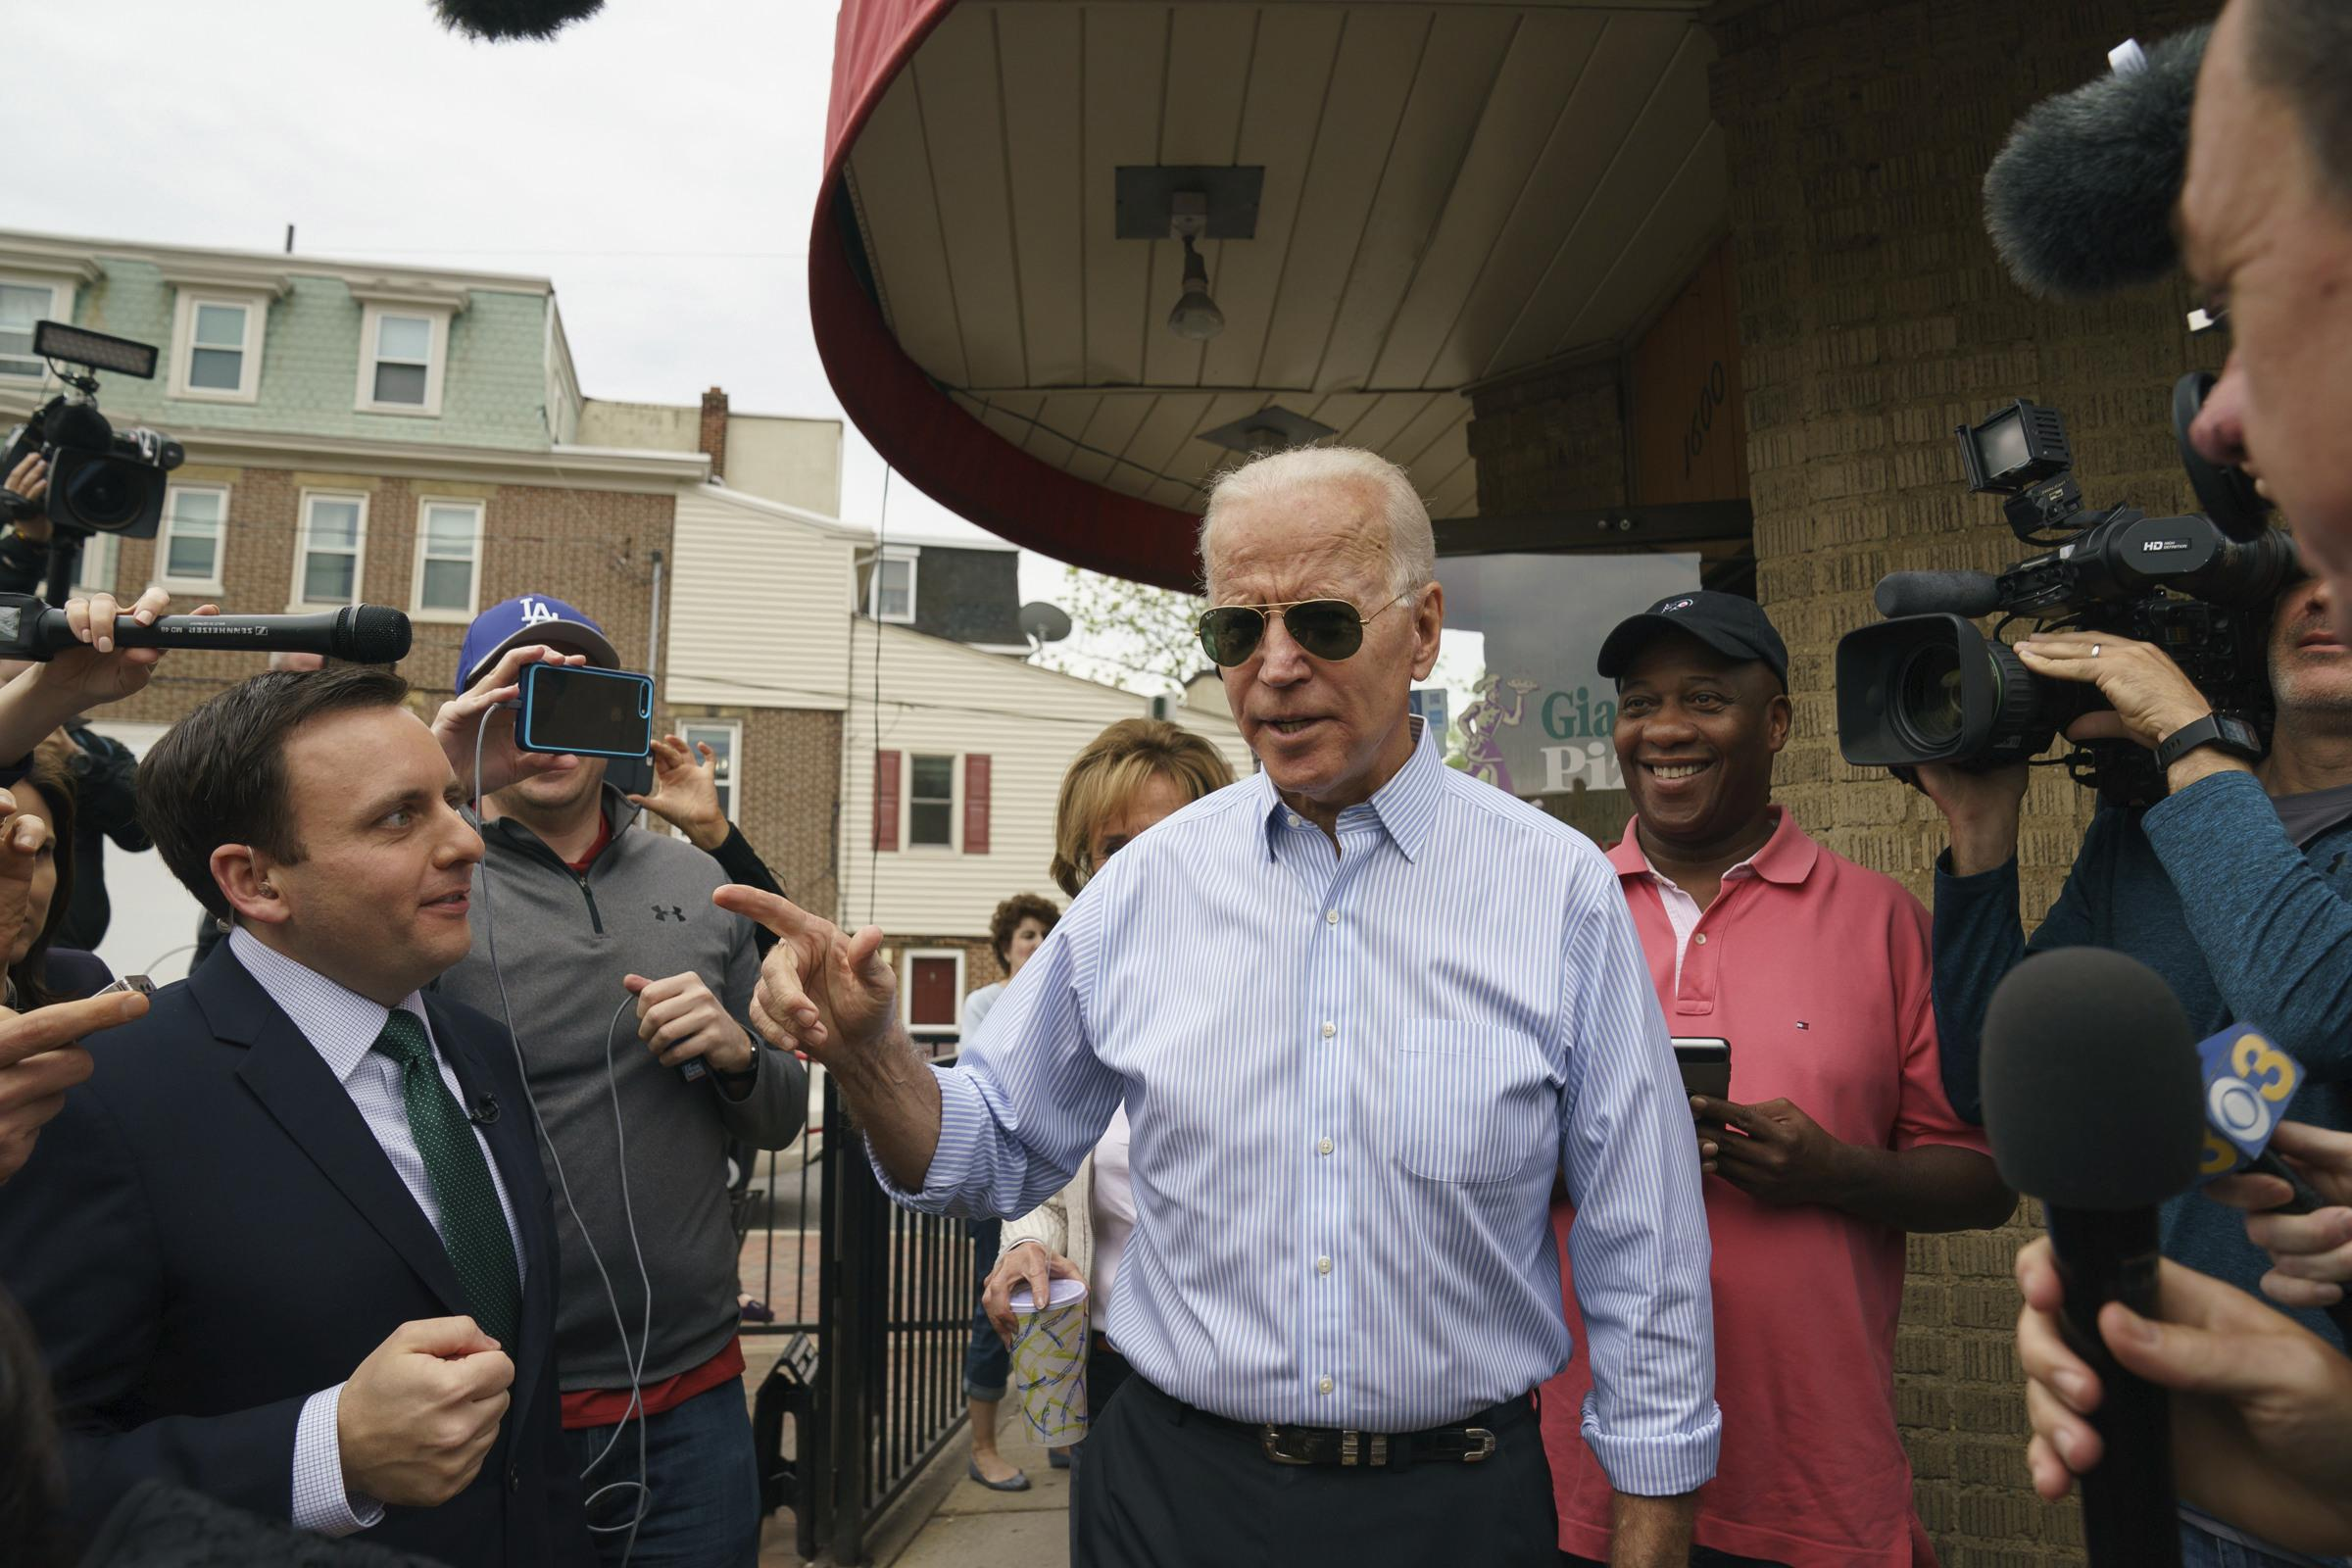 Presidential candidate Joe Biden on harassment allegations: 'I'm sorry I invaded your space'